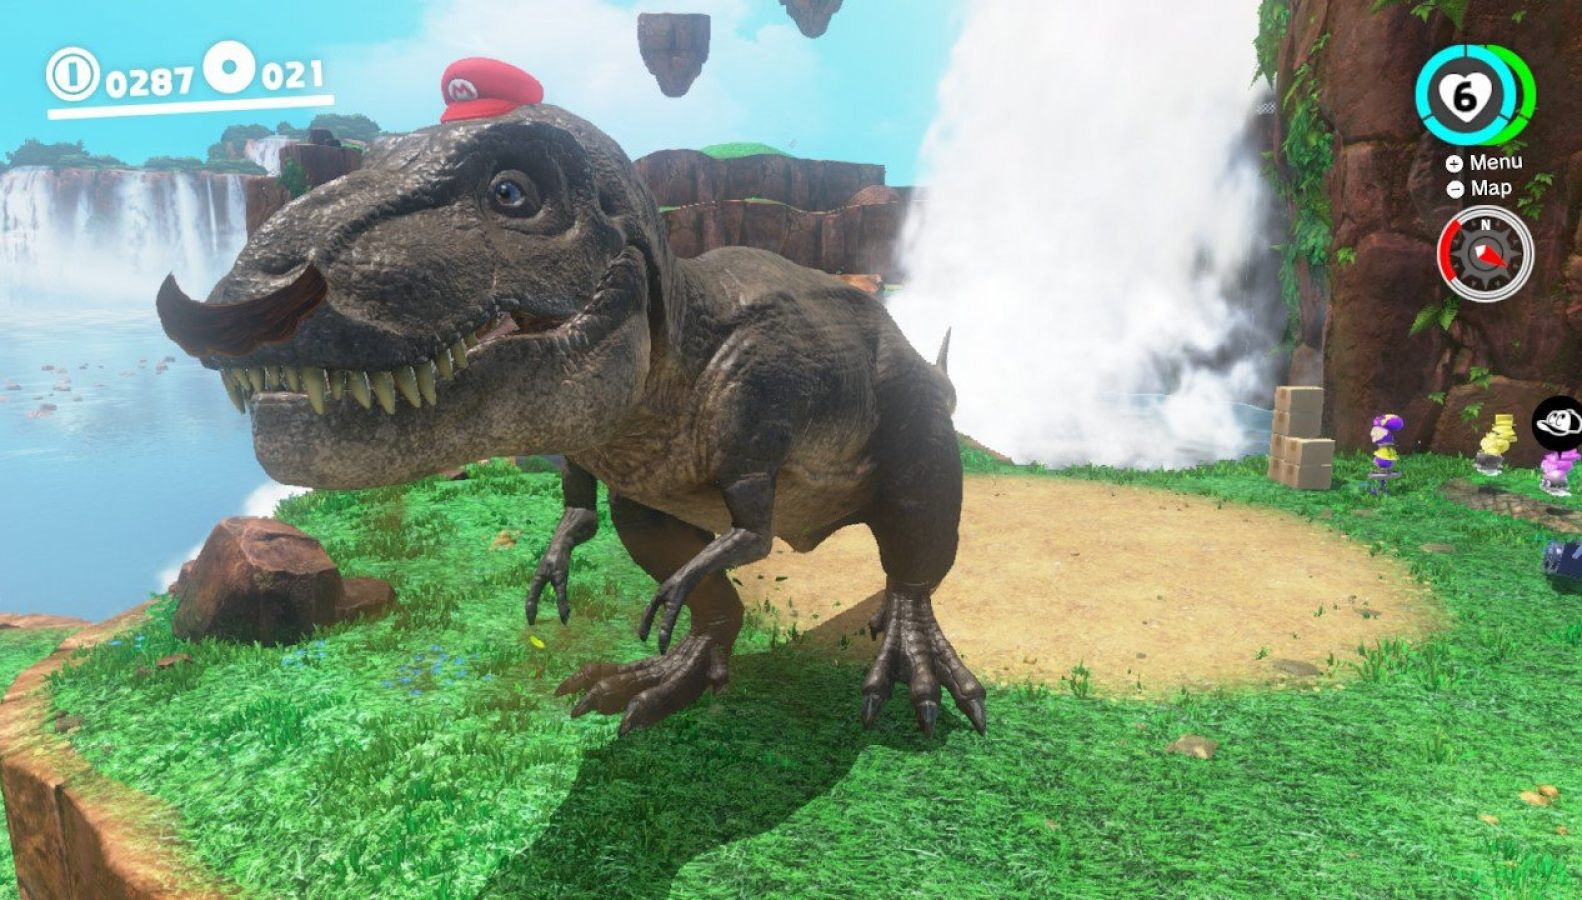 With the help of his new sidekick, Cappy, Mario can toss his hat at creatures and objects, transforming him and giving him new abilities.  When in Tyrannosaurus rex form, Mario can break stone barriers and stomp through hordes of baddies without breaking a sweat.